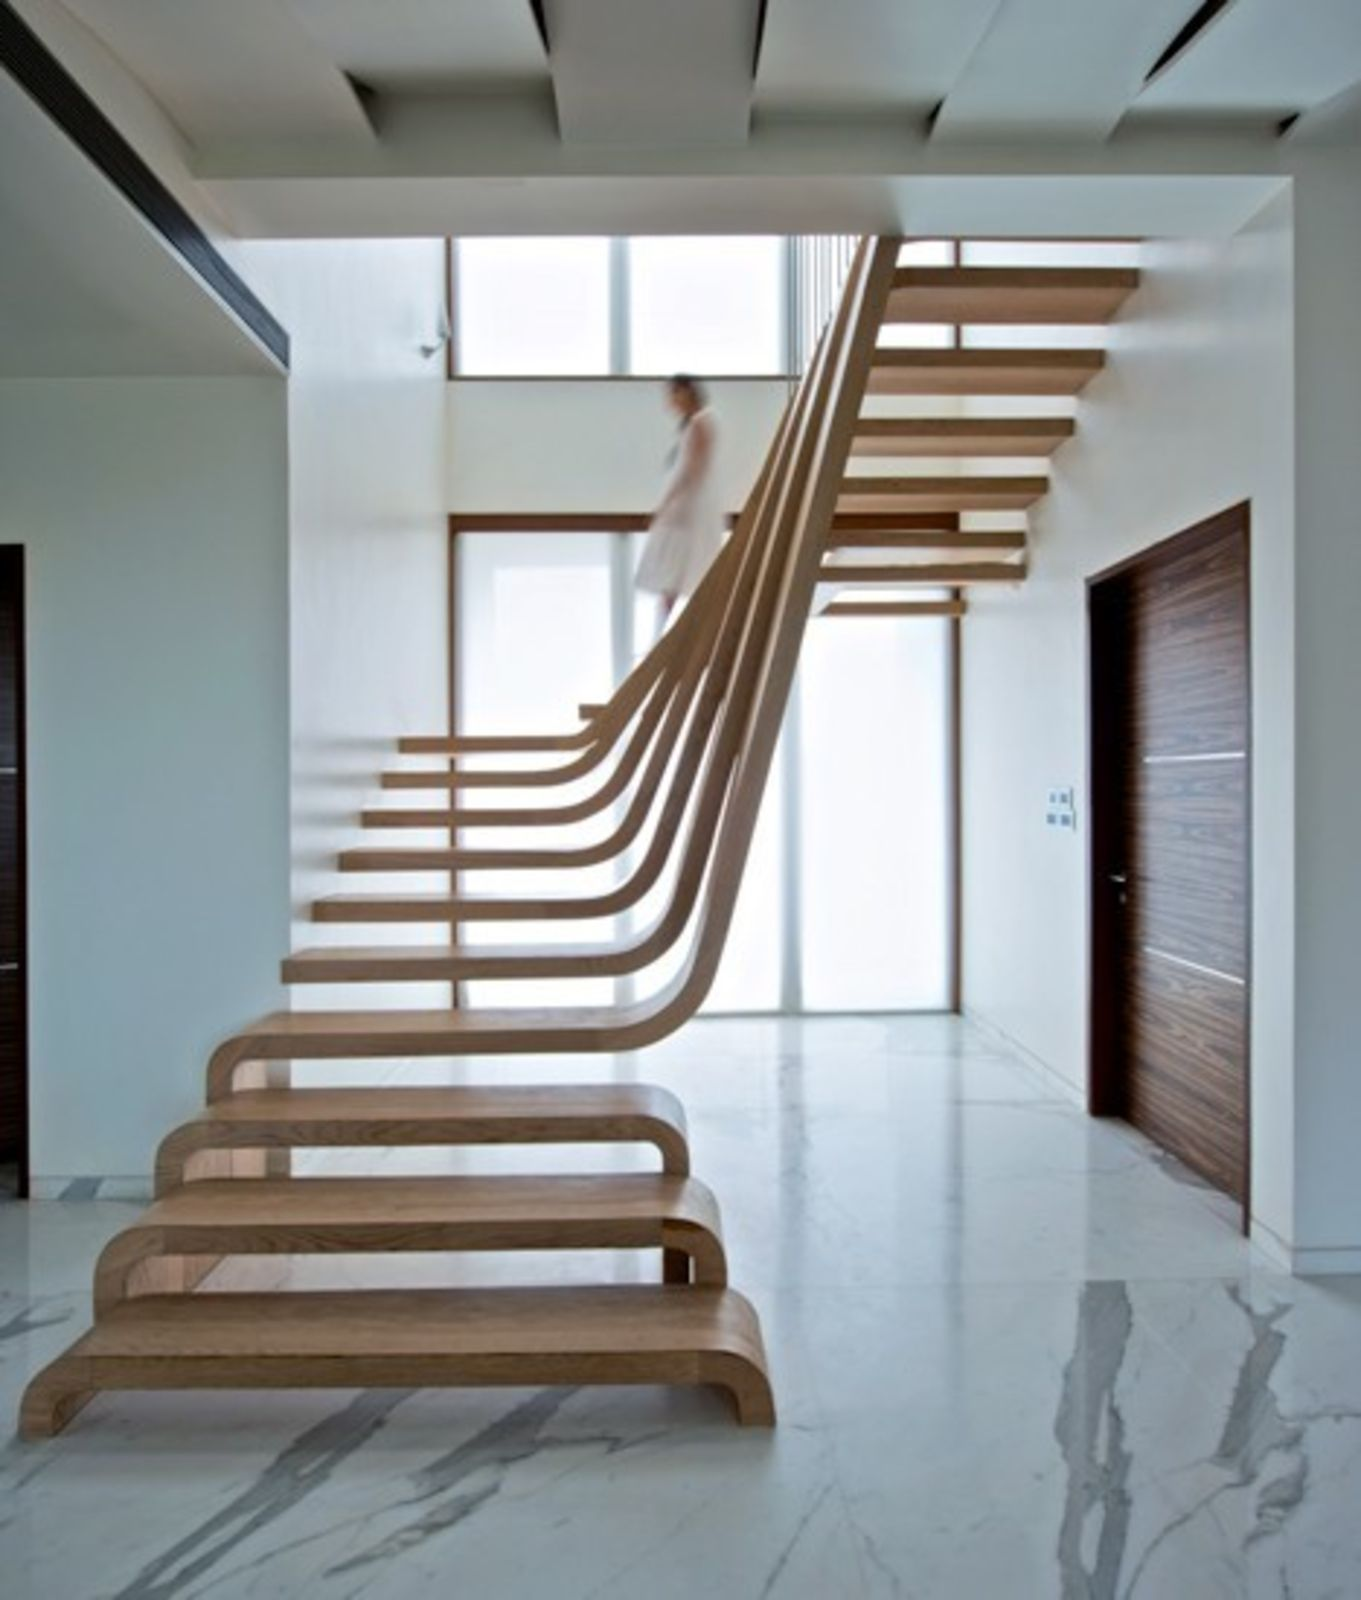 Beauty In Form: Modern Staircases We Love By Aileen Kwun